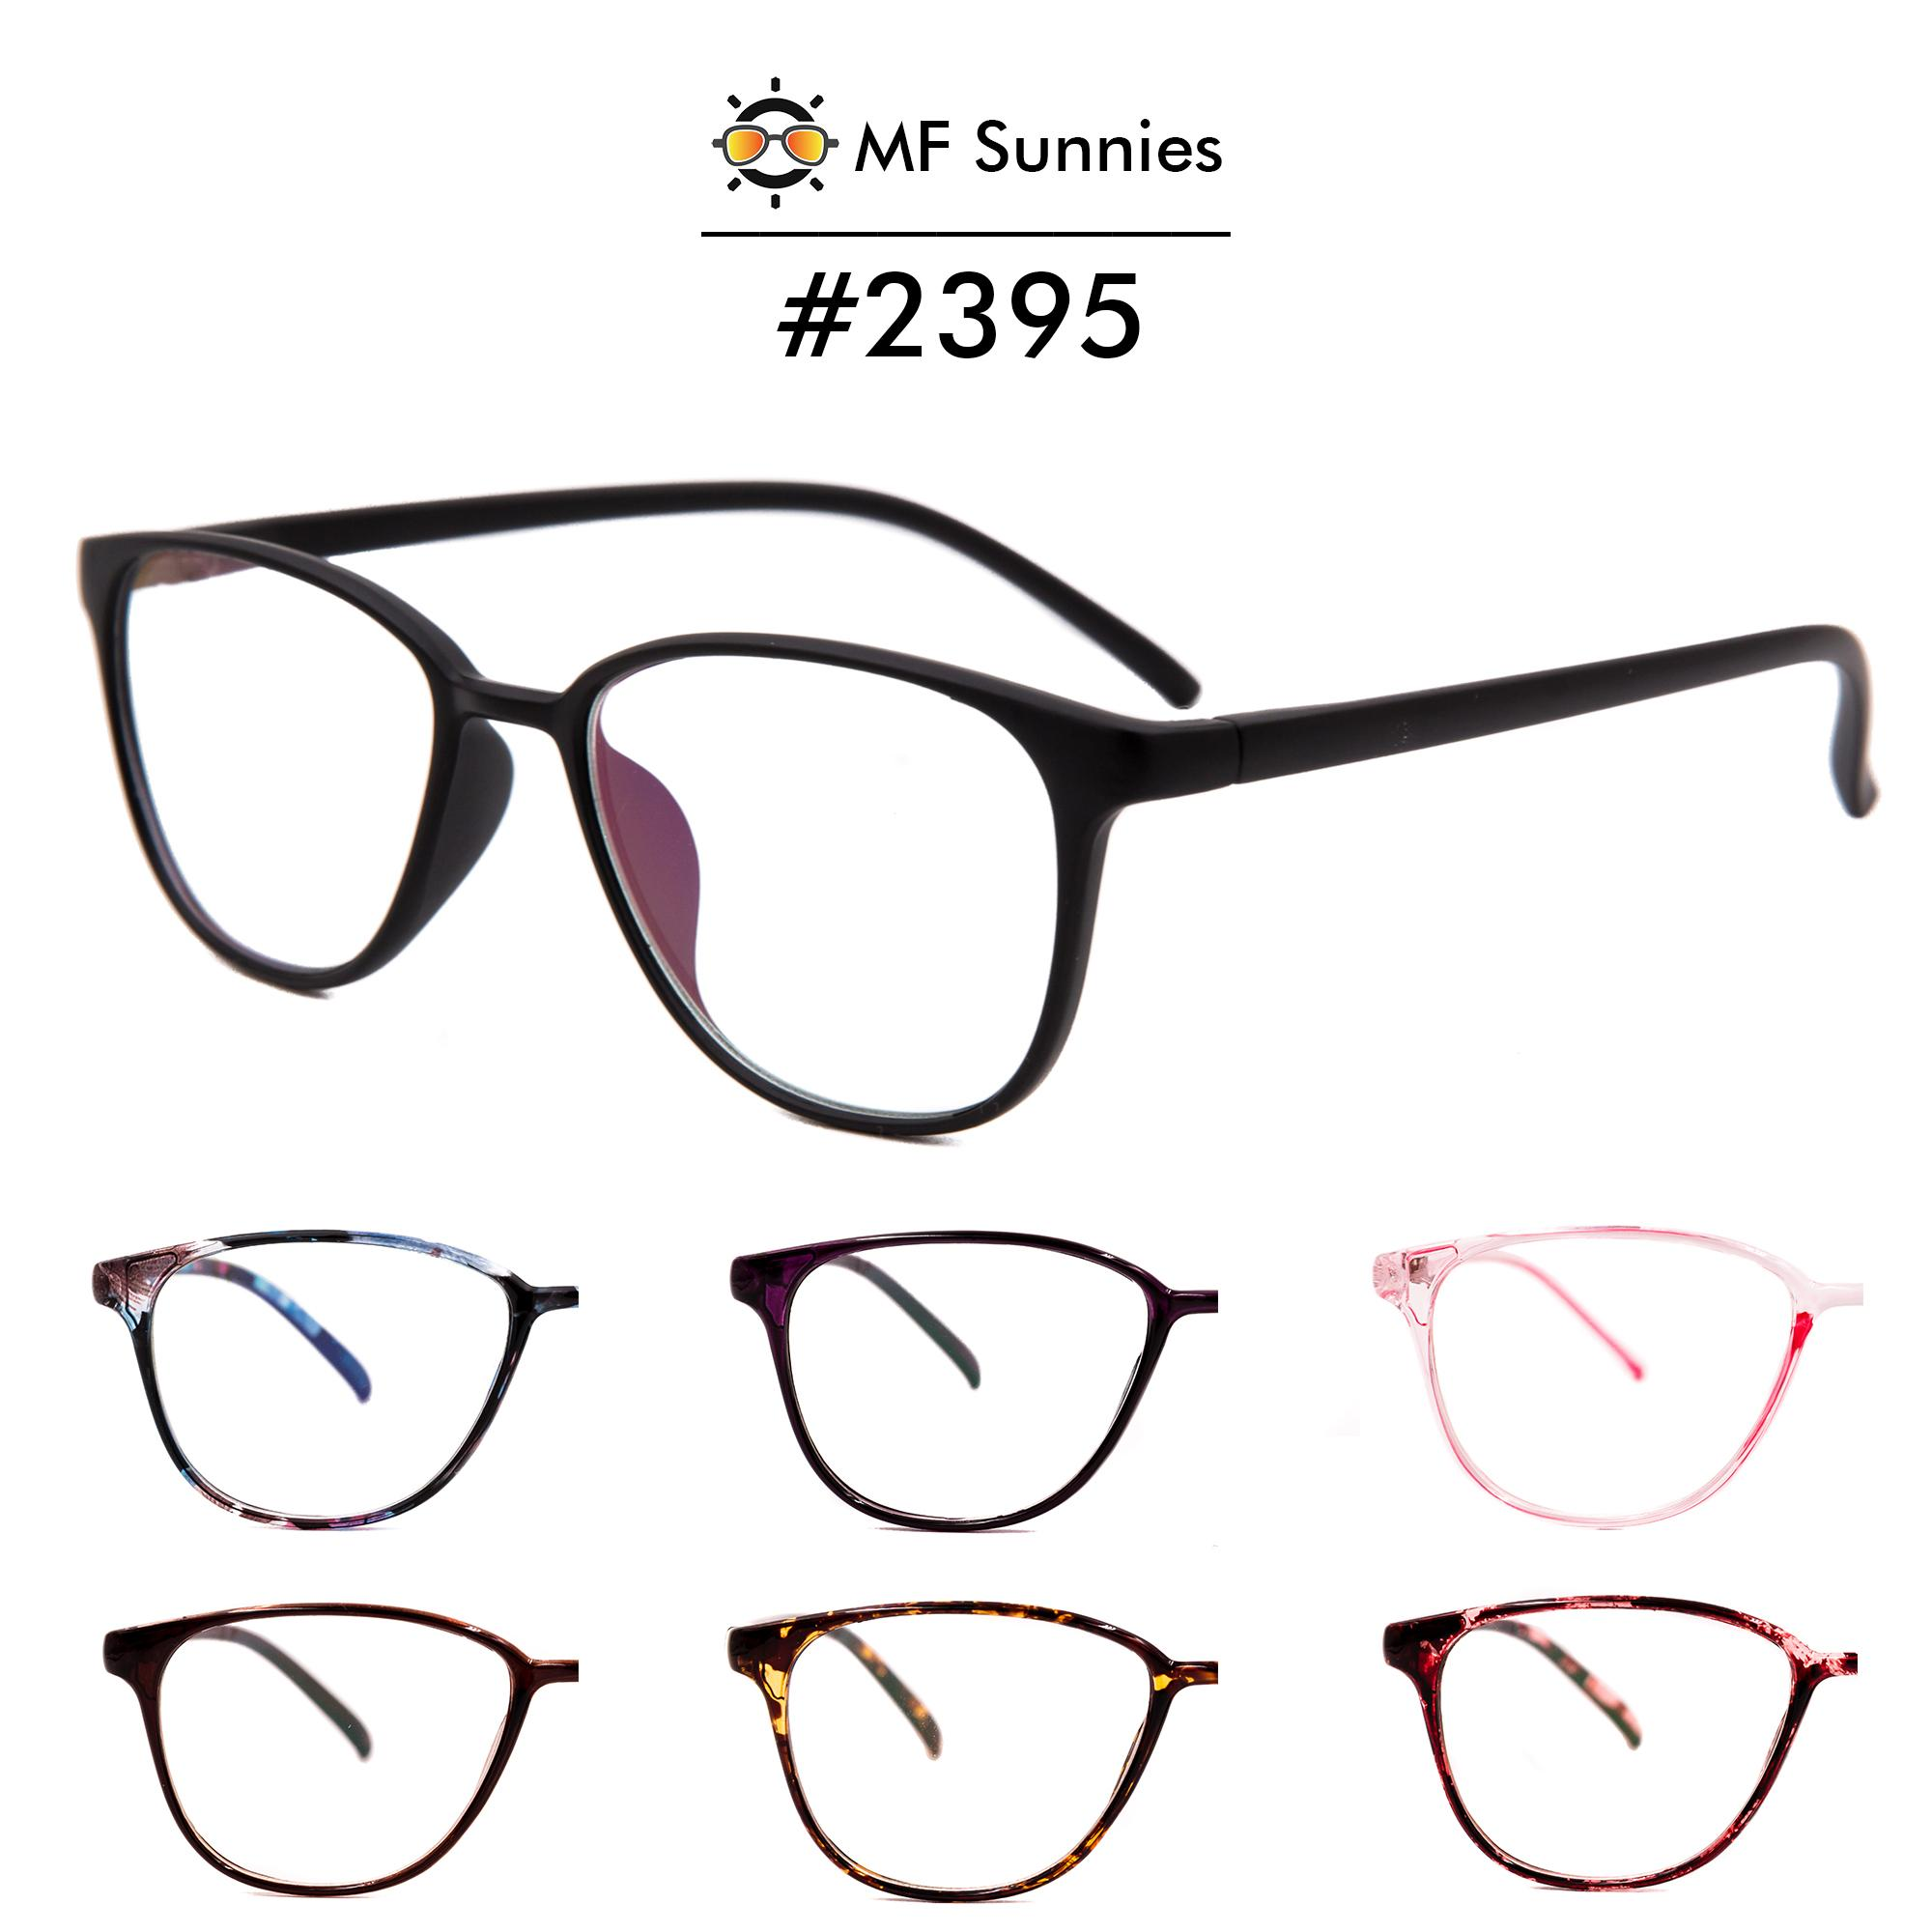 99cfe37f53 MFSunnies Computer Anti Blue light Radiation Eyewear High quality frame  Premium Acetate material Metal Hinges